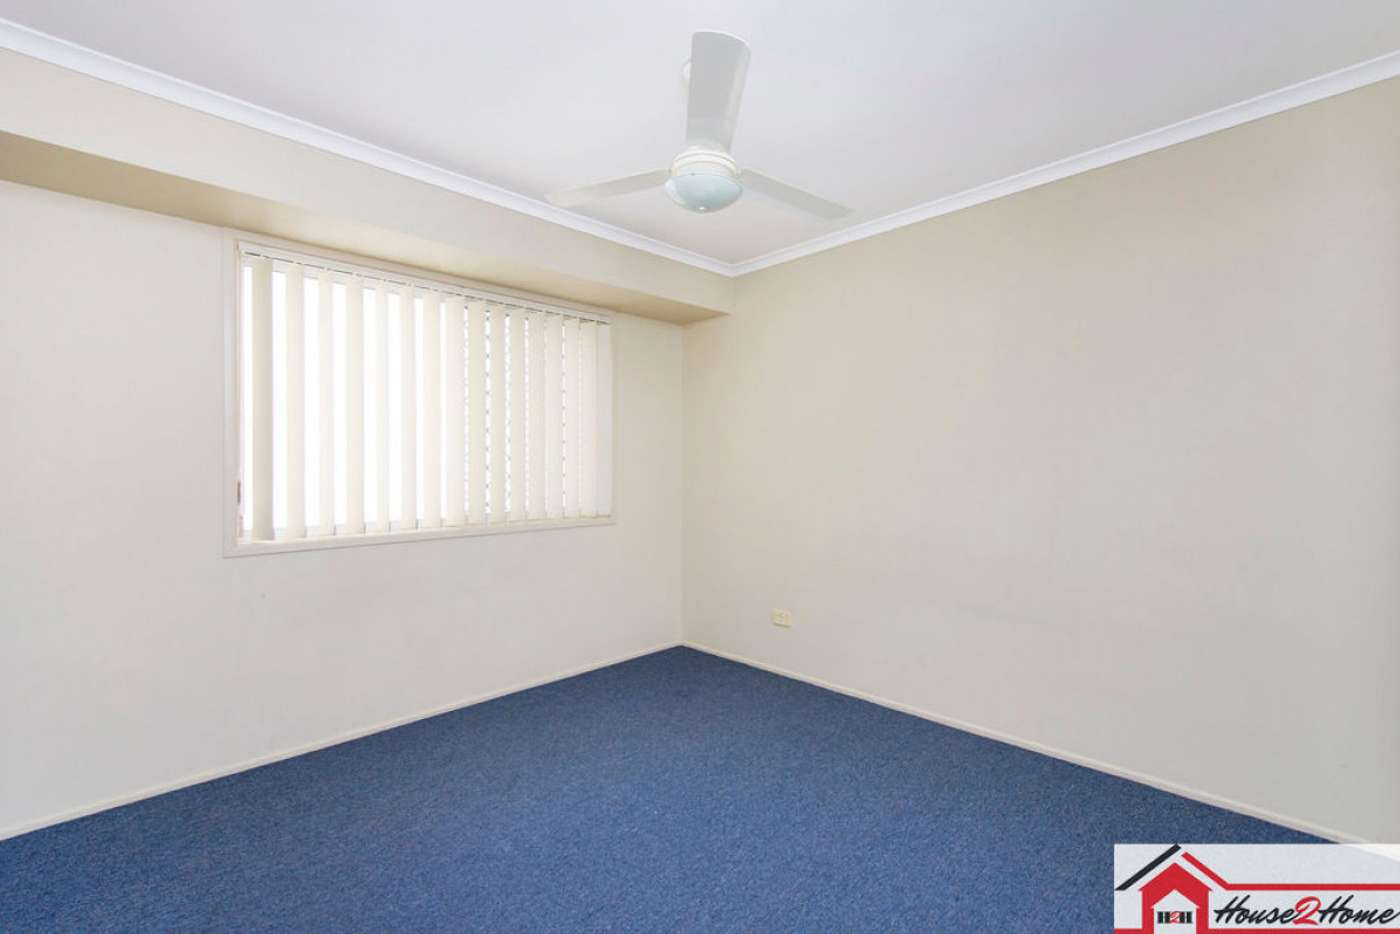 Seventh view of Homely house listing, 4 Carlton Close, Bethania QLD 4205